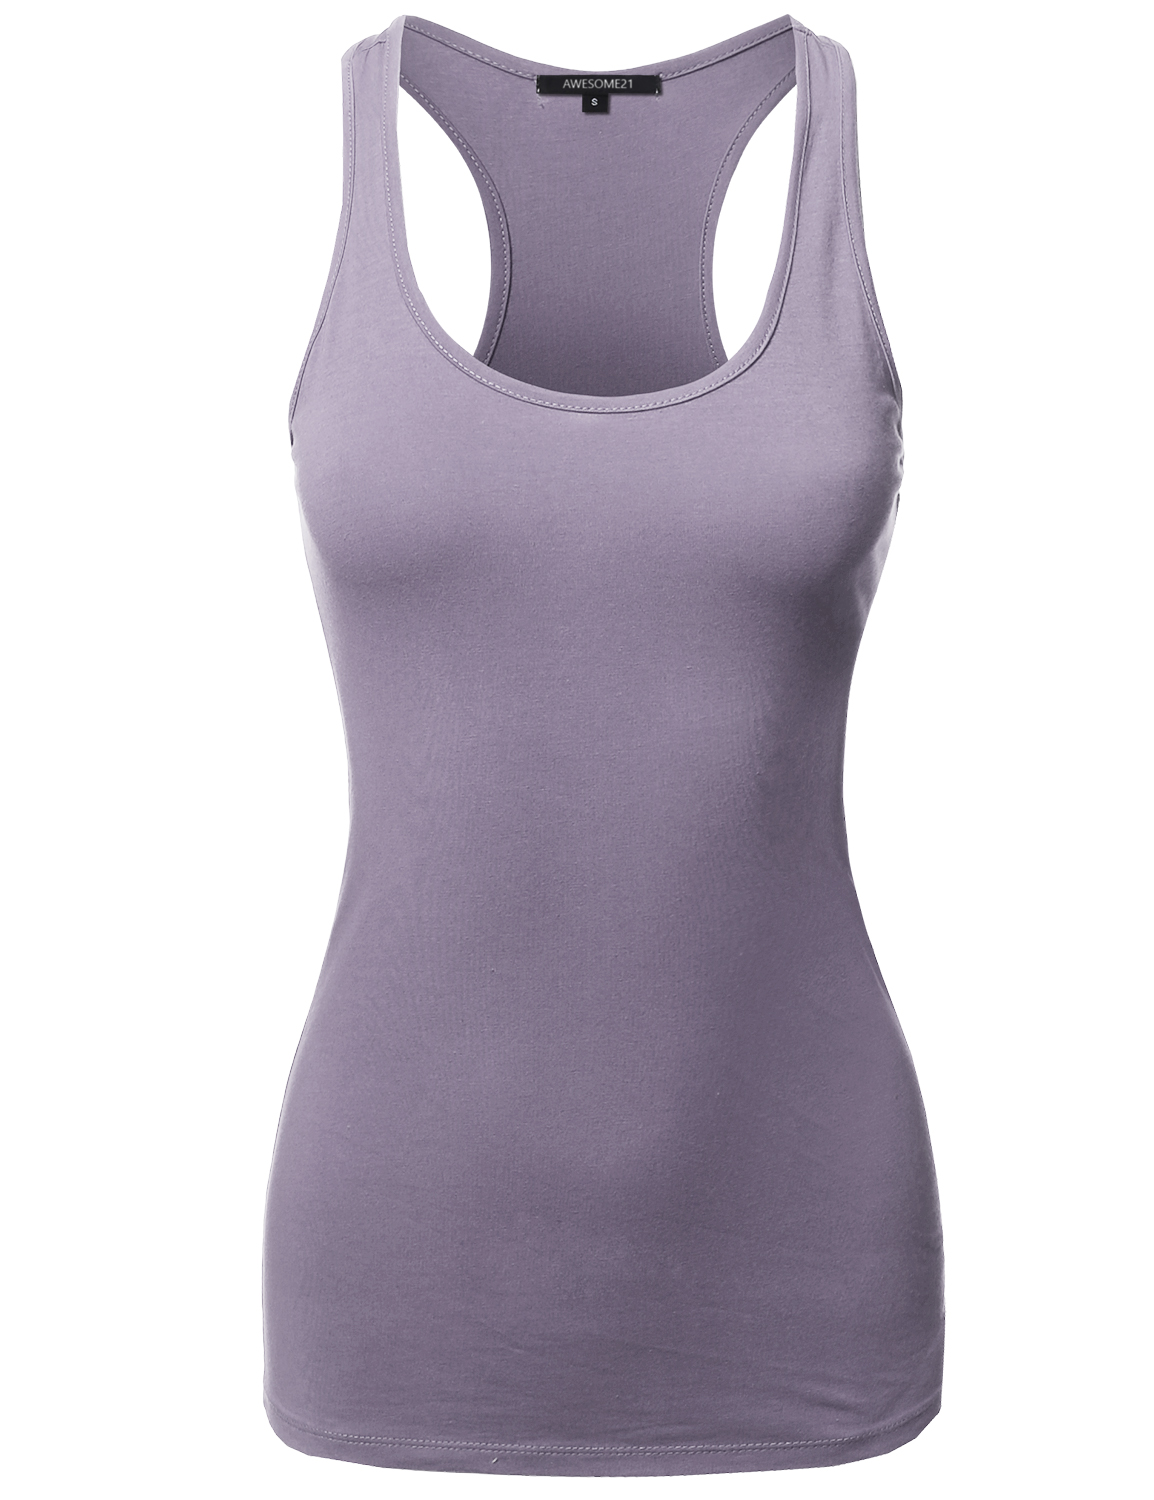 3cdfdb3c506f5b FashionOutfit Women s Solid Basic Sleeveless Racer-Back Cotton Based Tank  Top